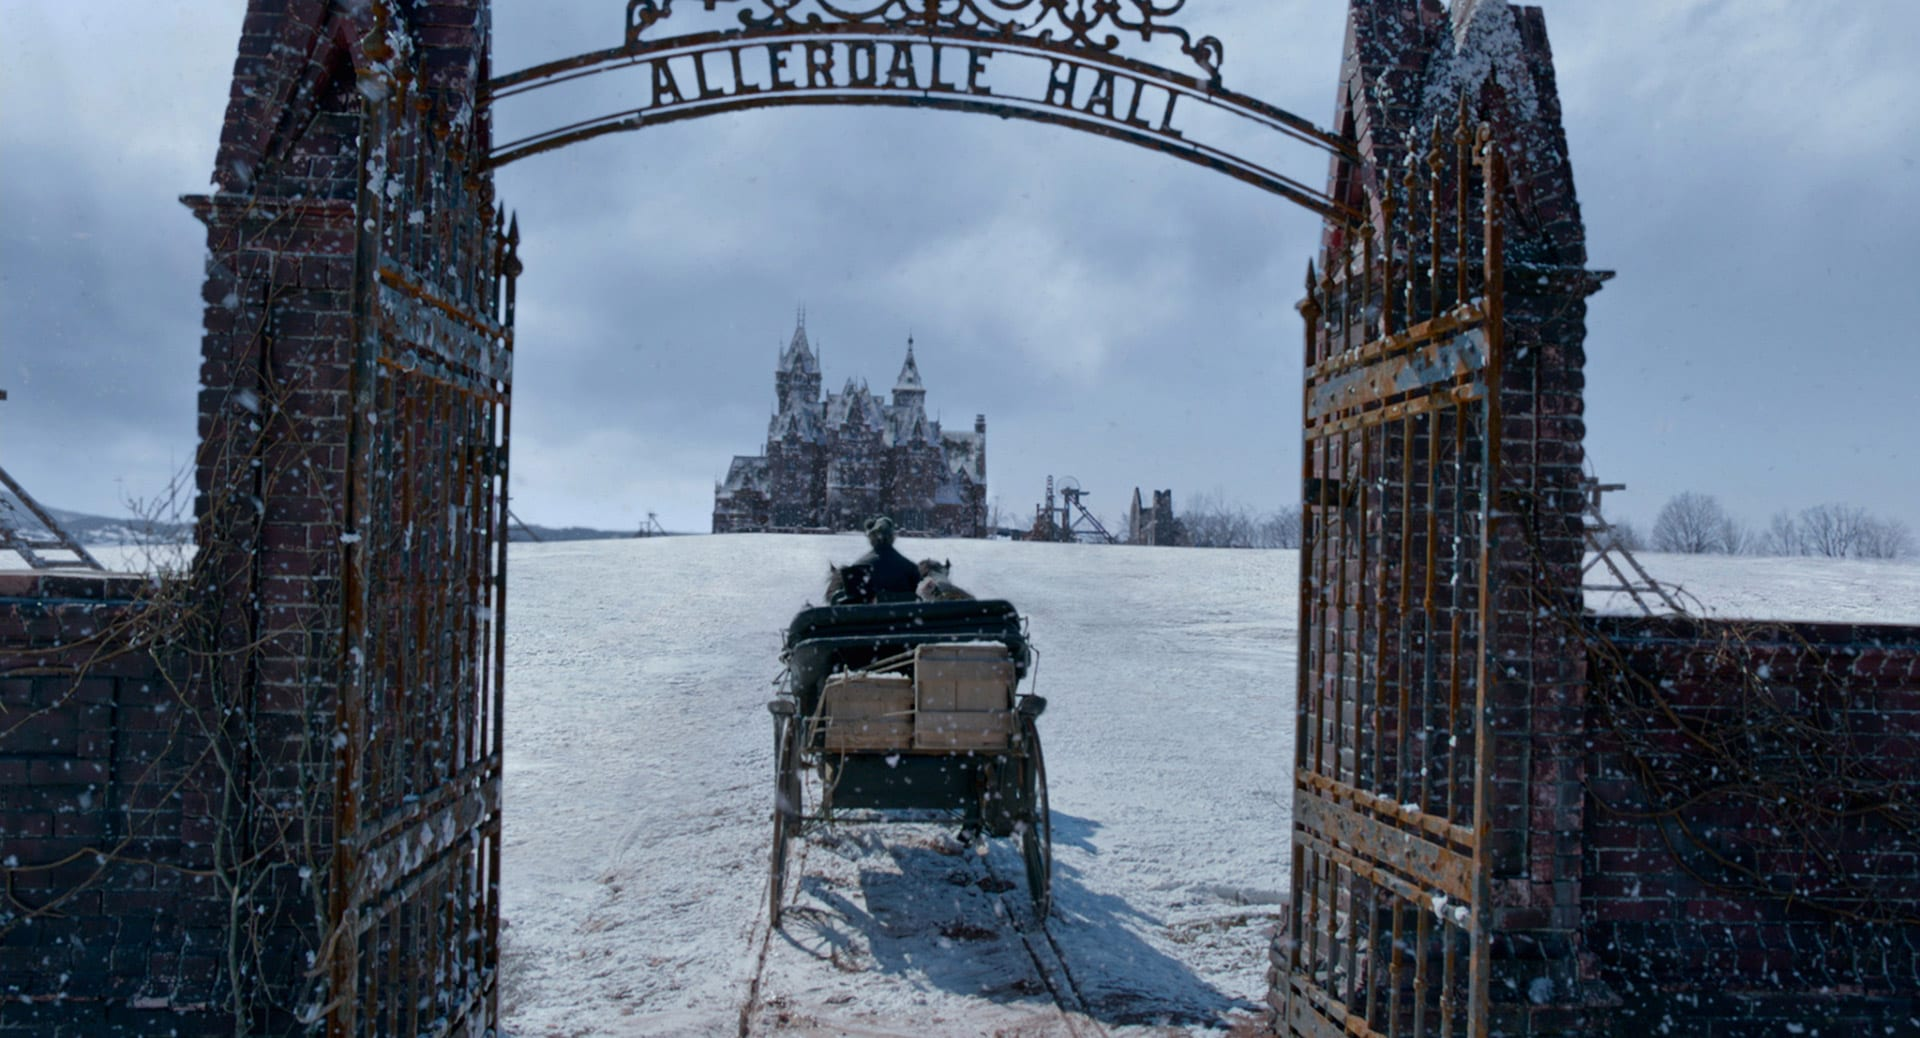 crimson-peak-allerdale-hall